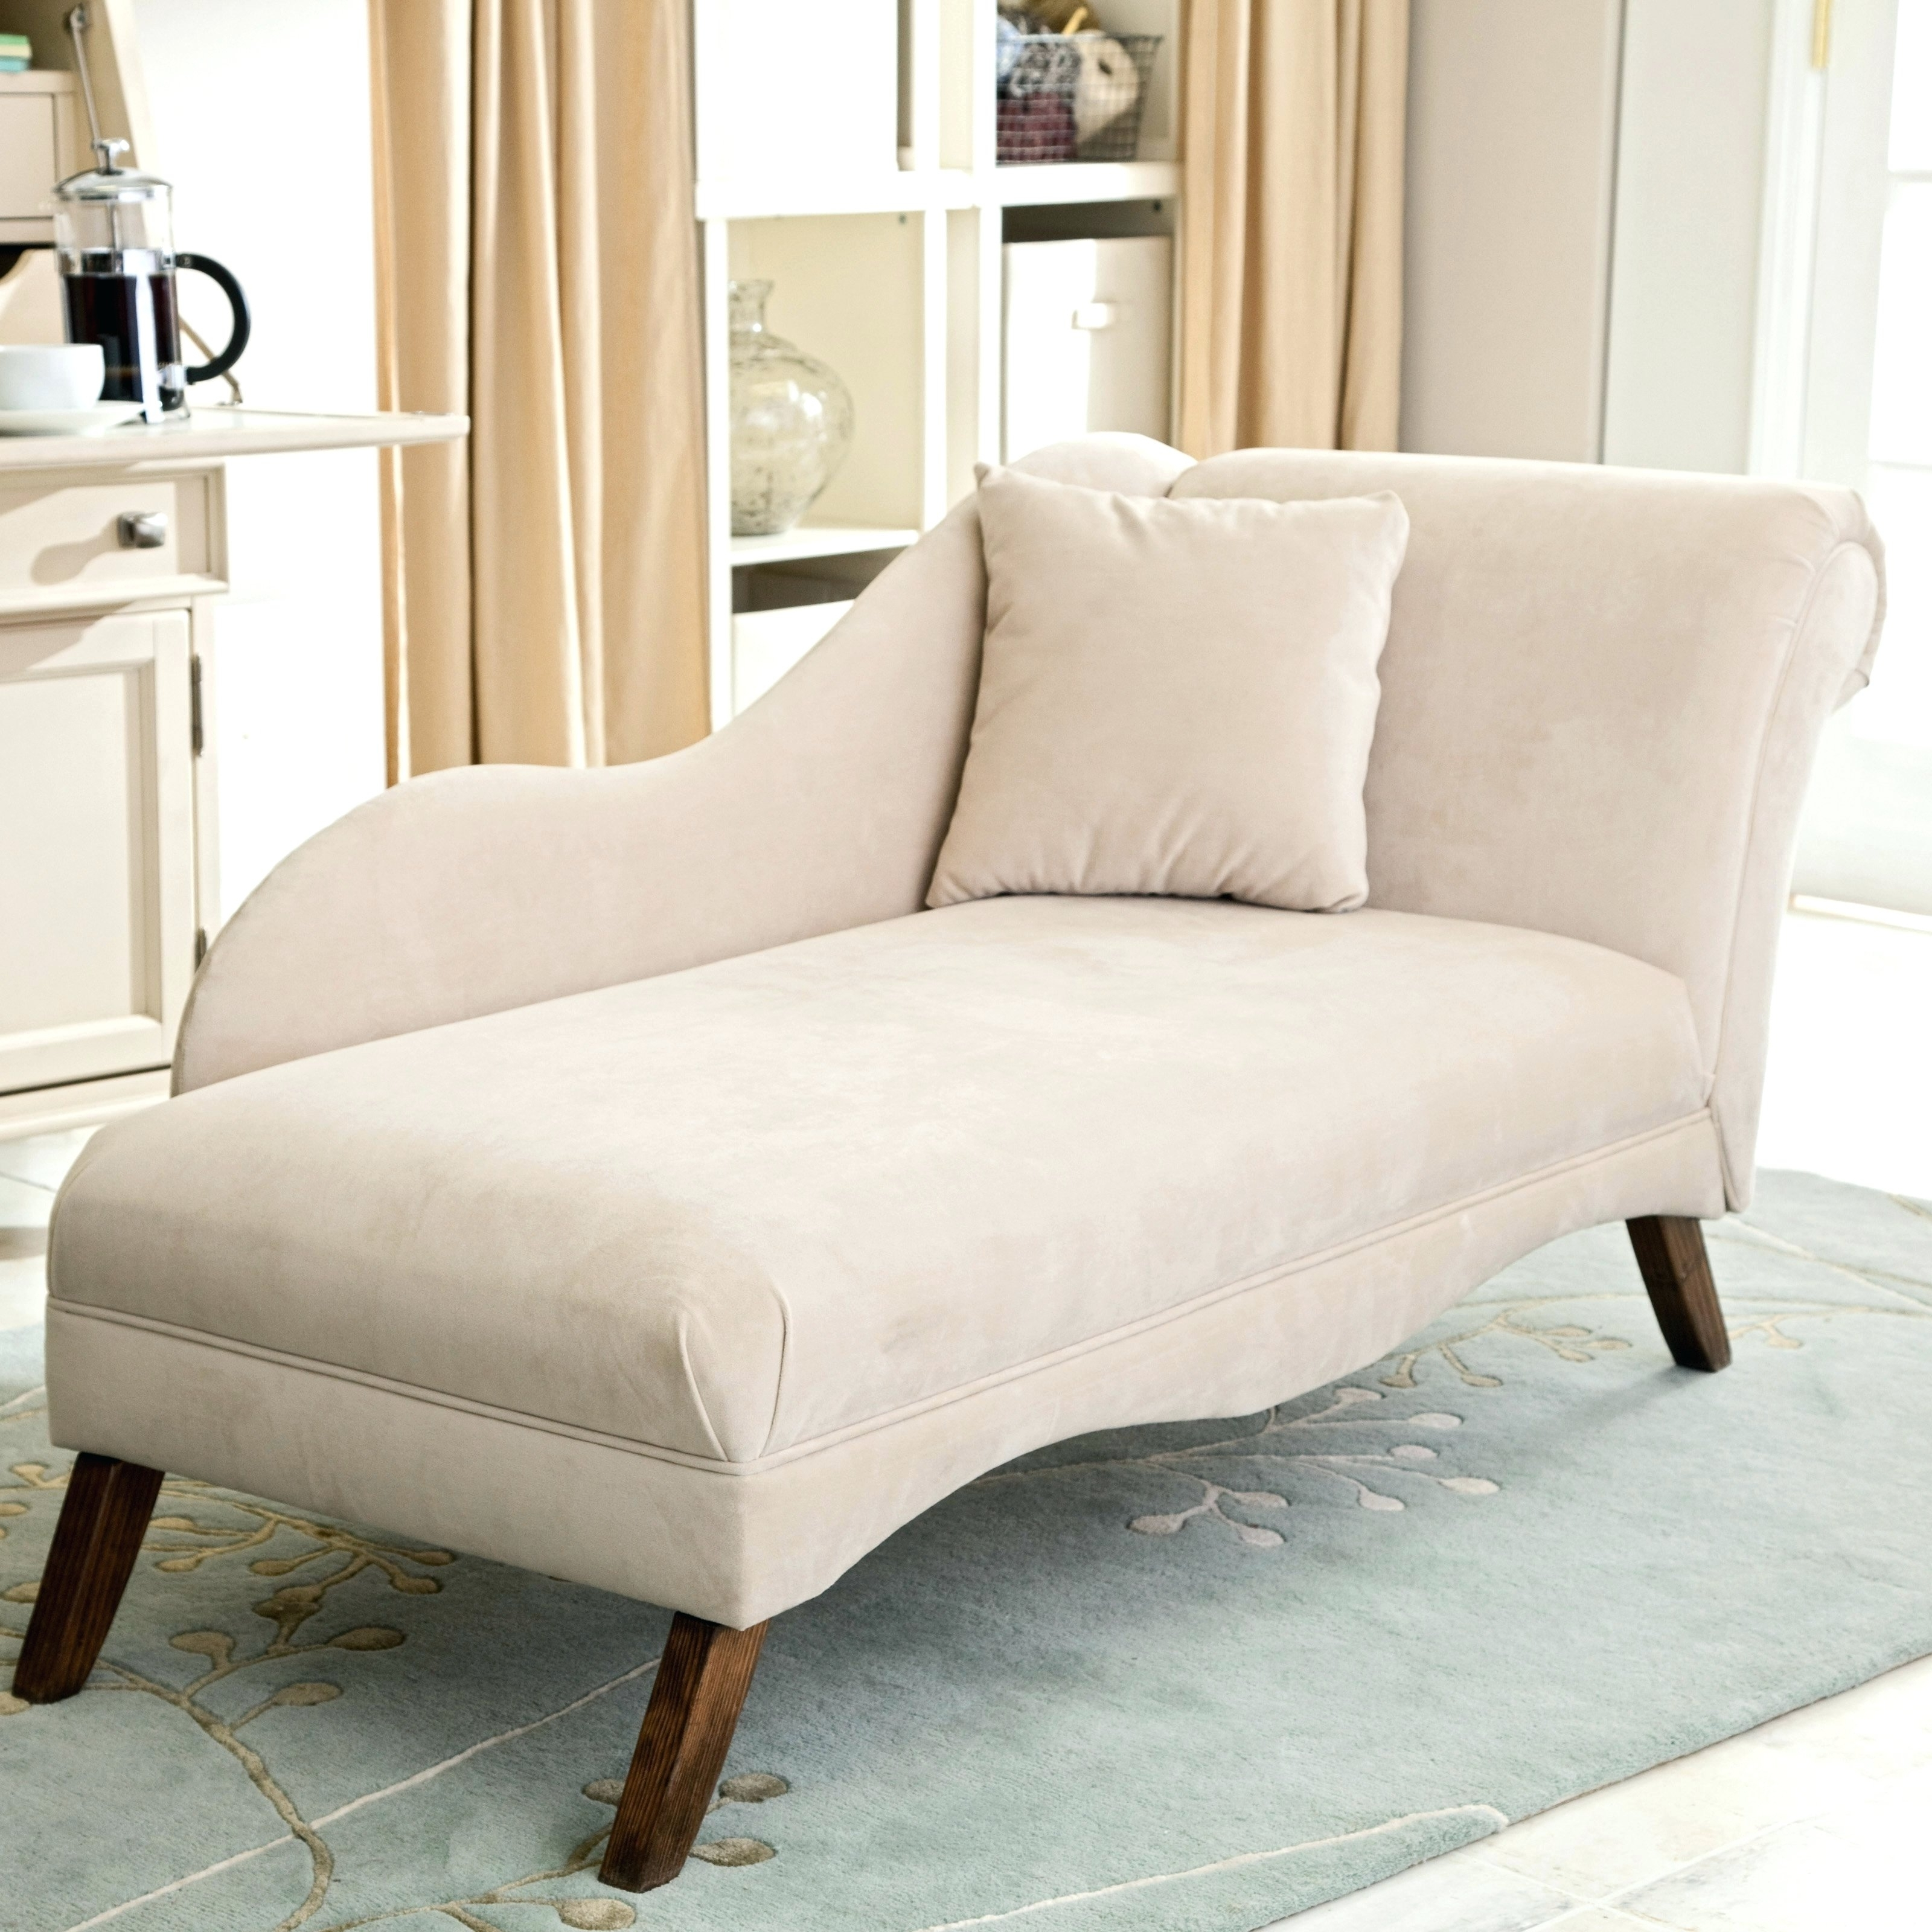 Current Comfy Chaise Lounges Intended For Bedroom : Lounge Chairs For Bedroom Image Ideas Designs Comfy (View 10 of 15)